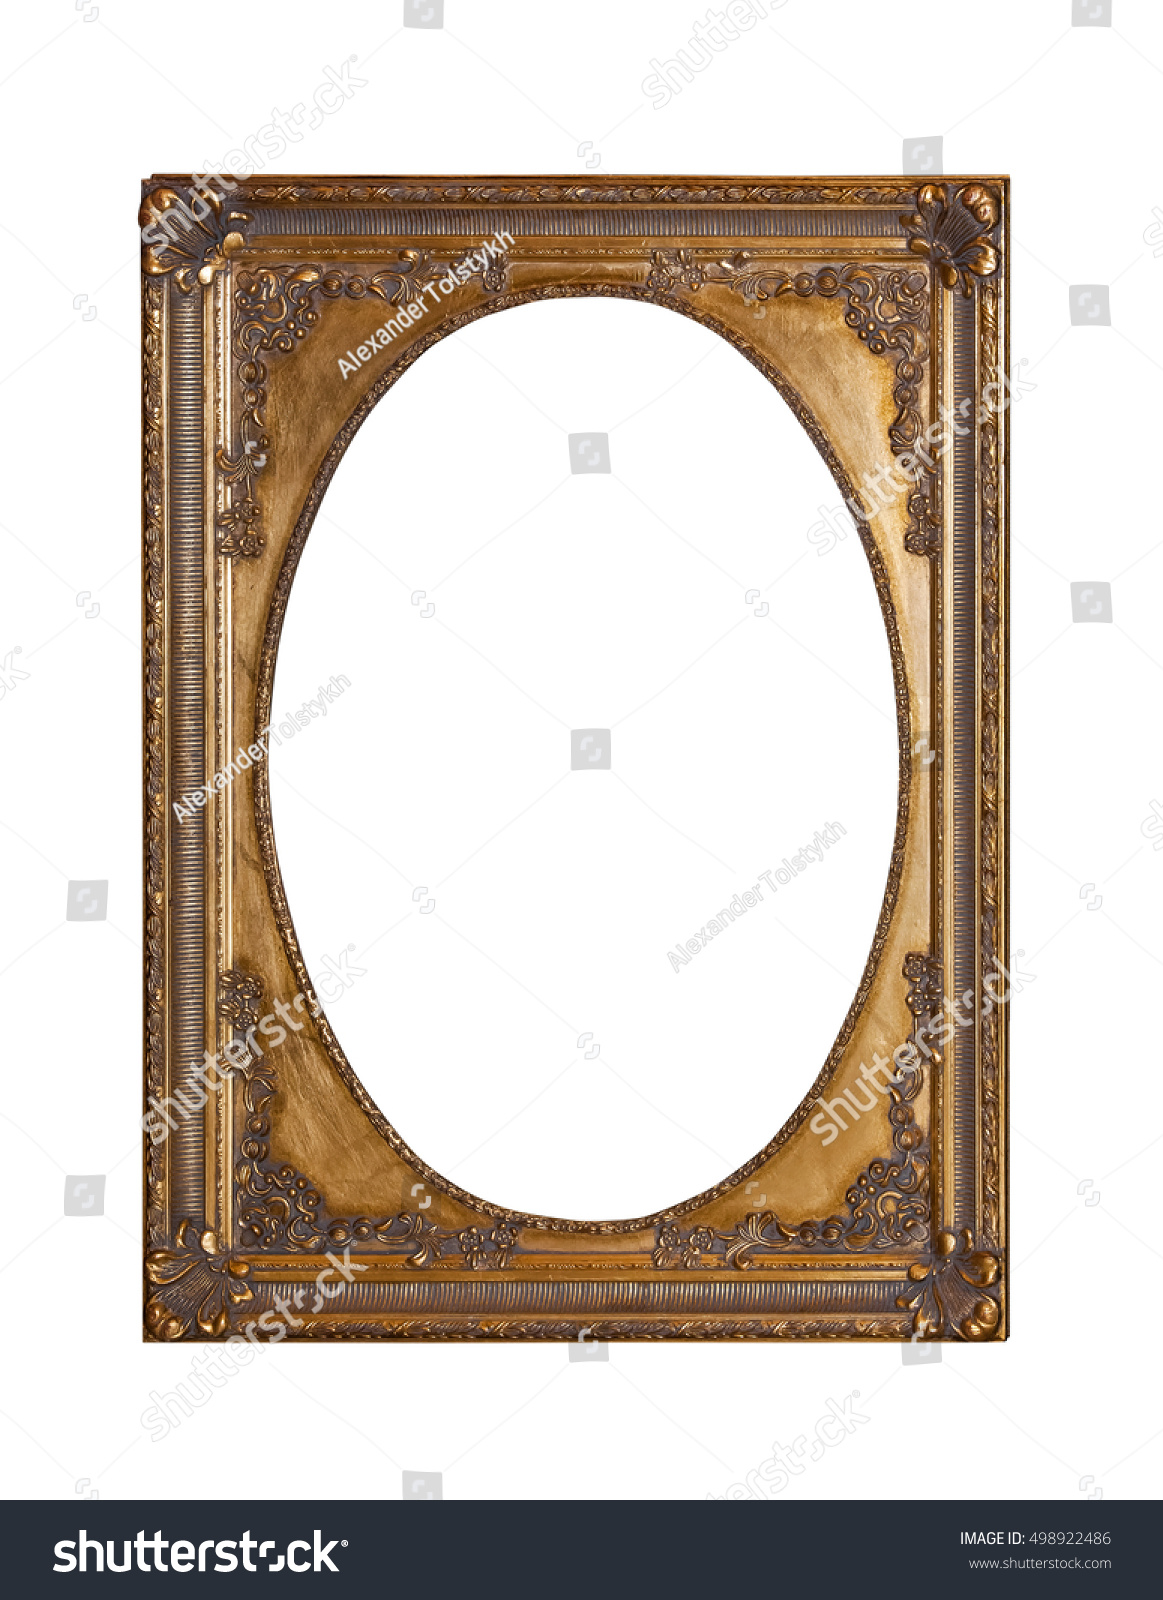 Golden frame for paintings, mirrors or photos | EZ Canvas